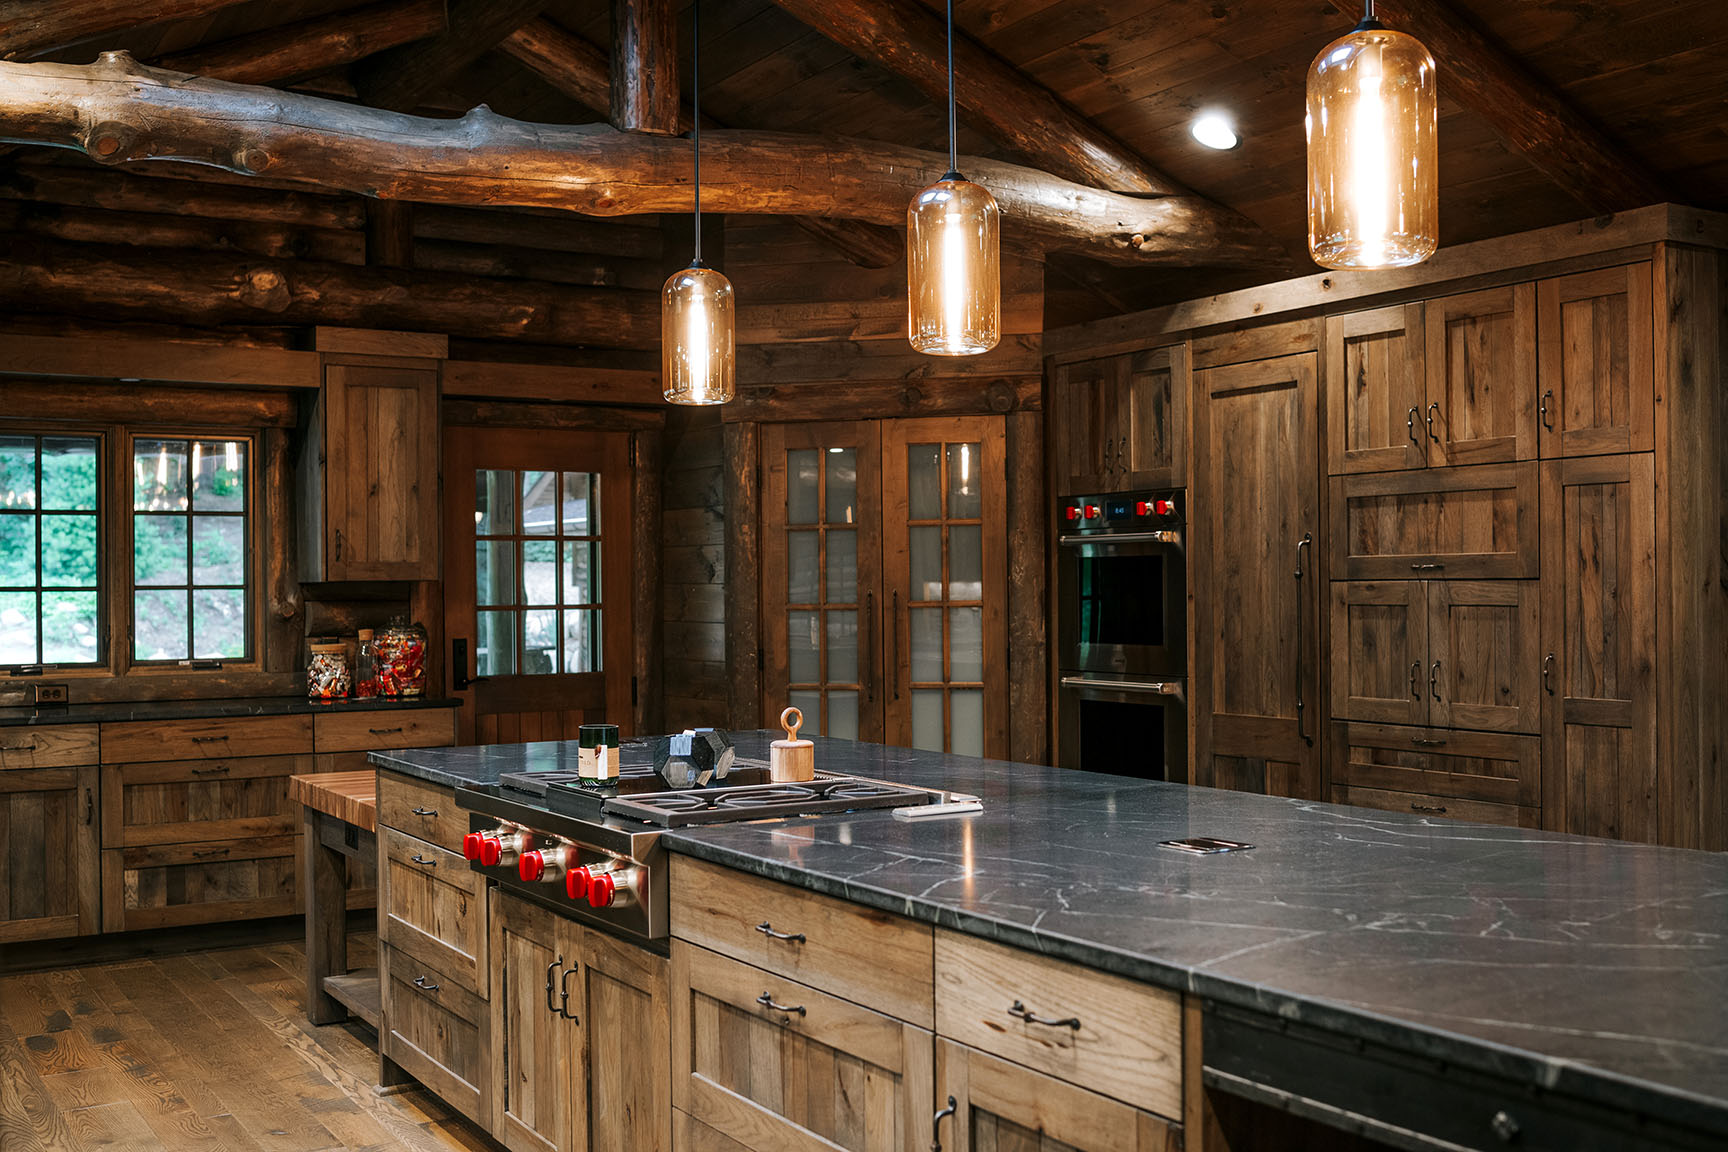 Rustic Hickory Kitchen Cabinets Distressed Rustic Hickory kitchen cabinets   Alpine Cabinetry